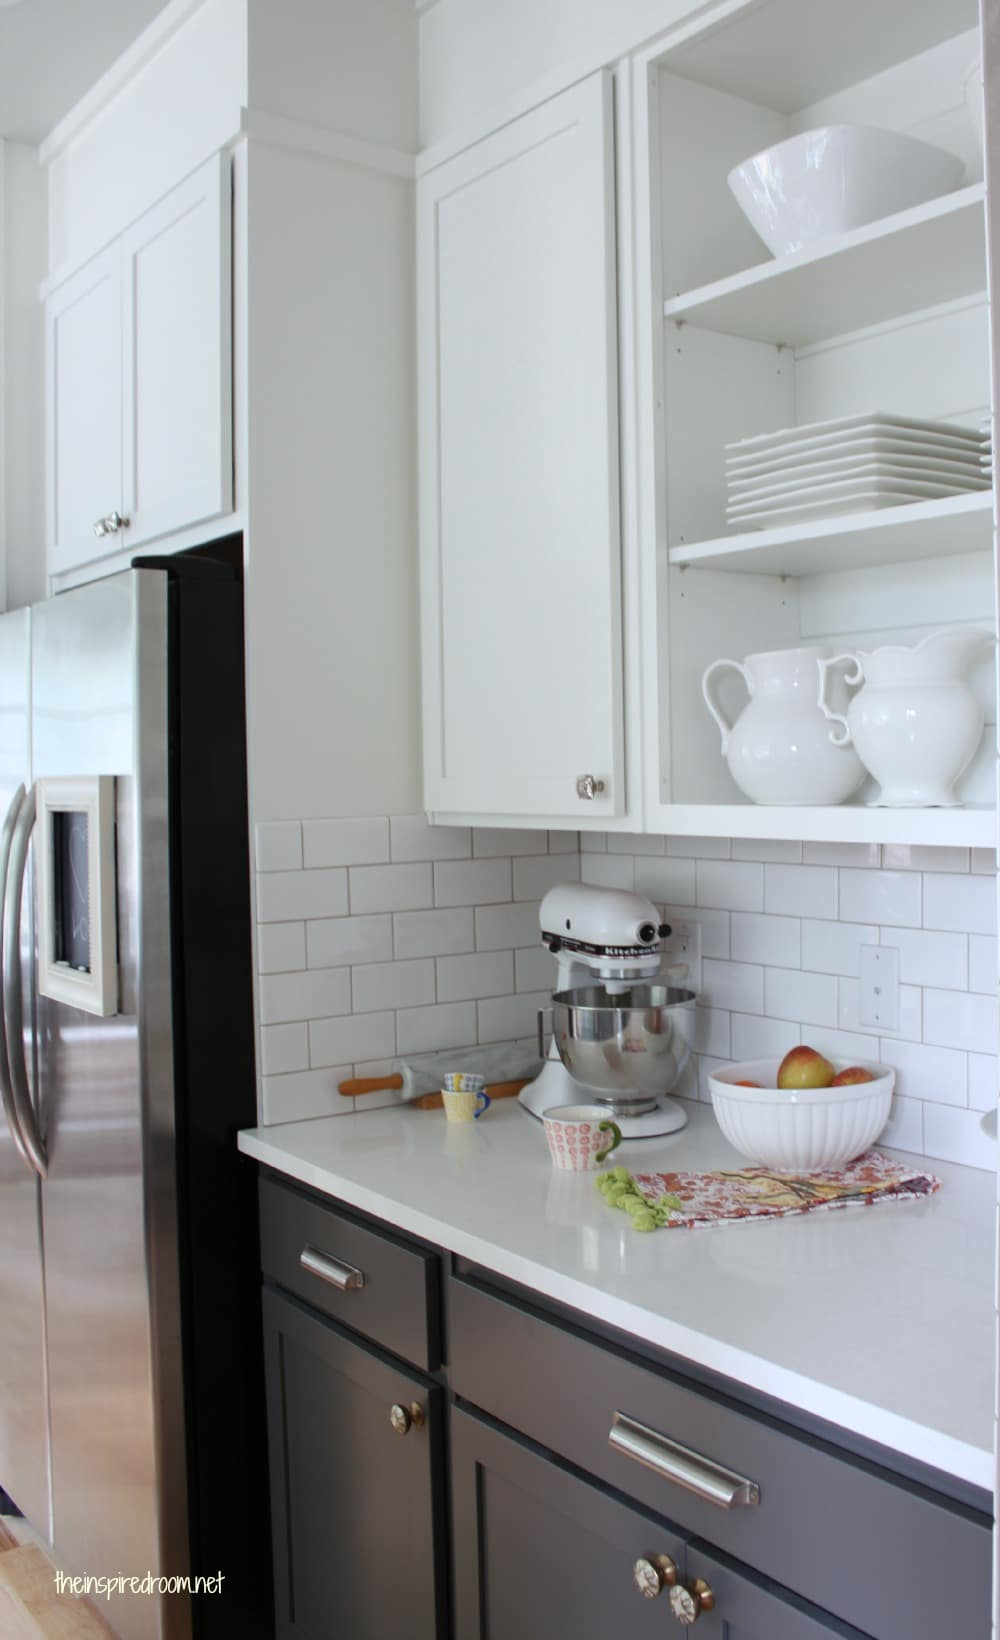 Stunning Kitchen Cabinet Colors Before u After